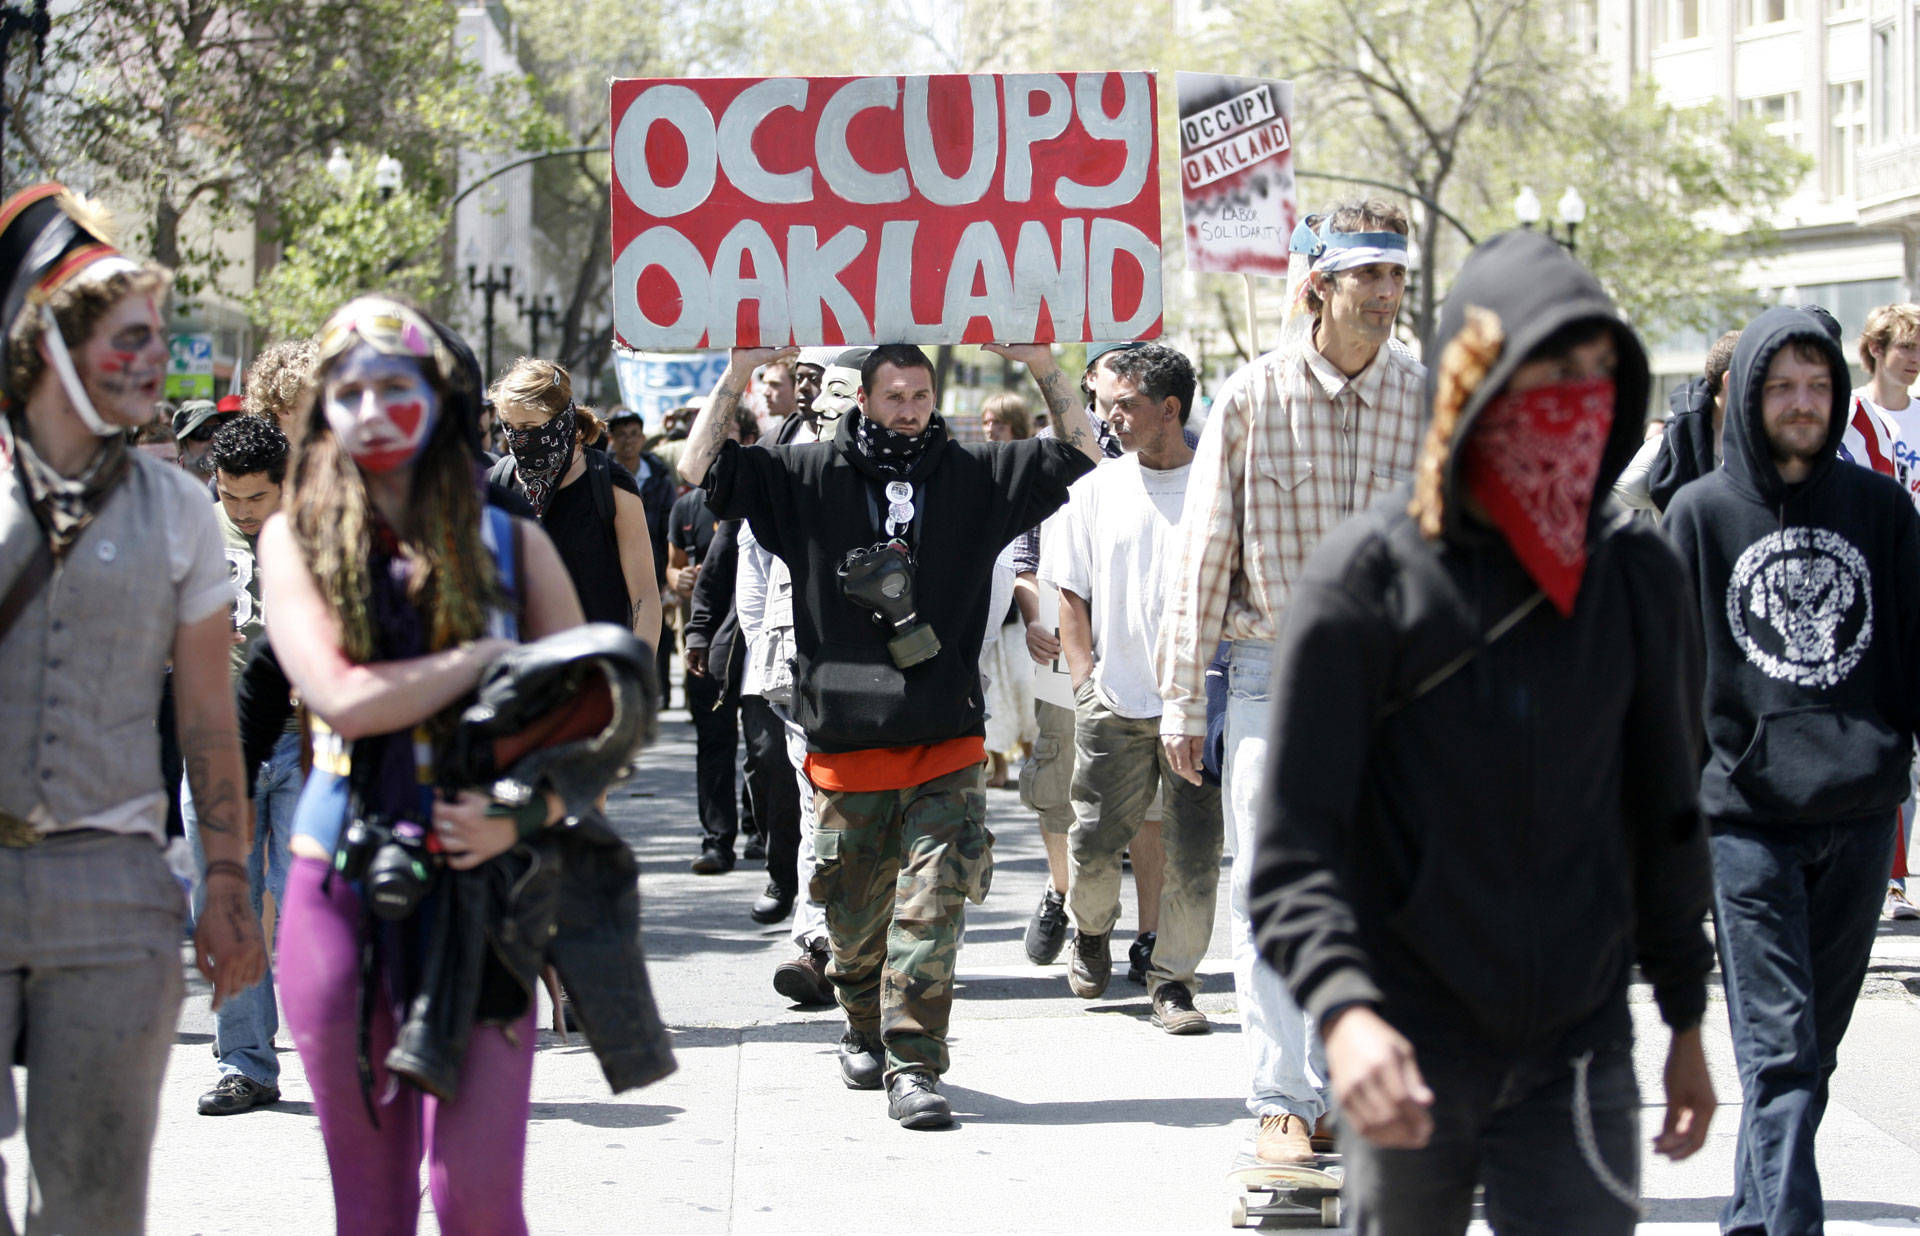 Occupy Oakland protesters march near City Hall in downtown Oakland during a May Day protest on May 1, 2012.  KIMIHIRO HOSHINO/AFP/GettyImages